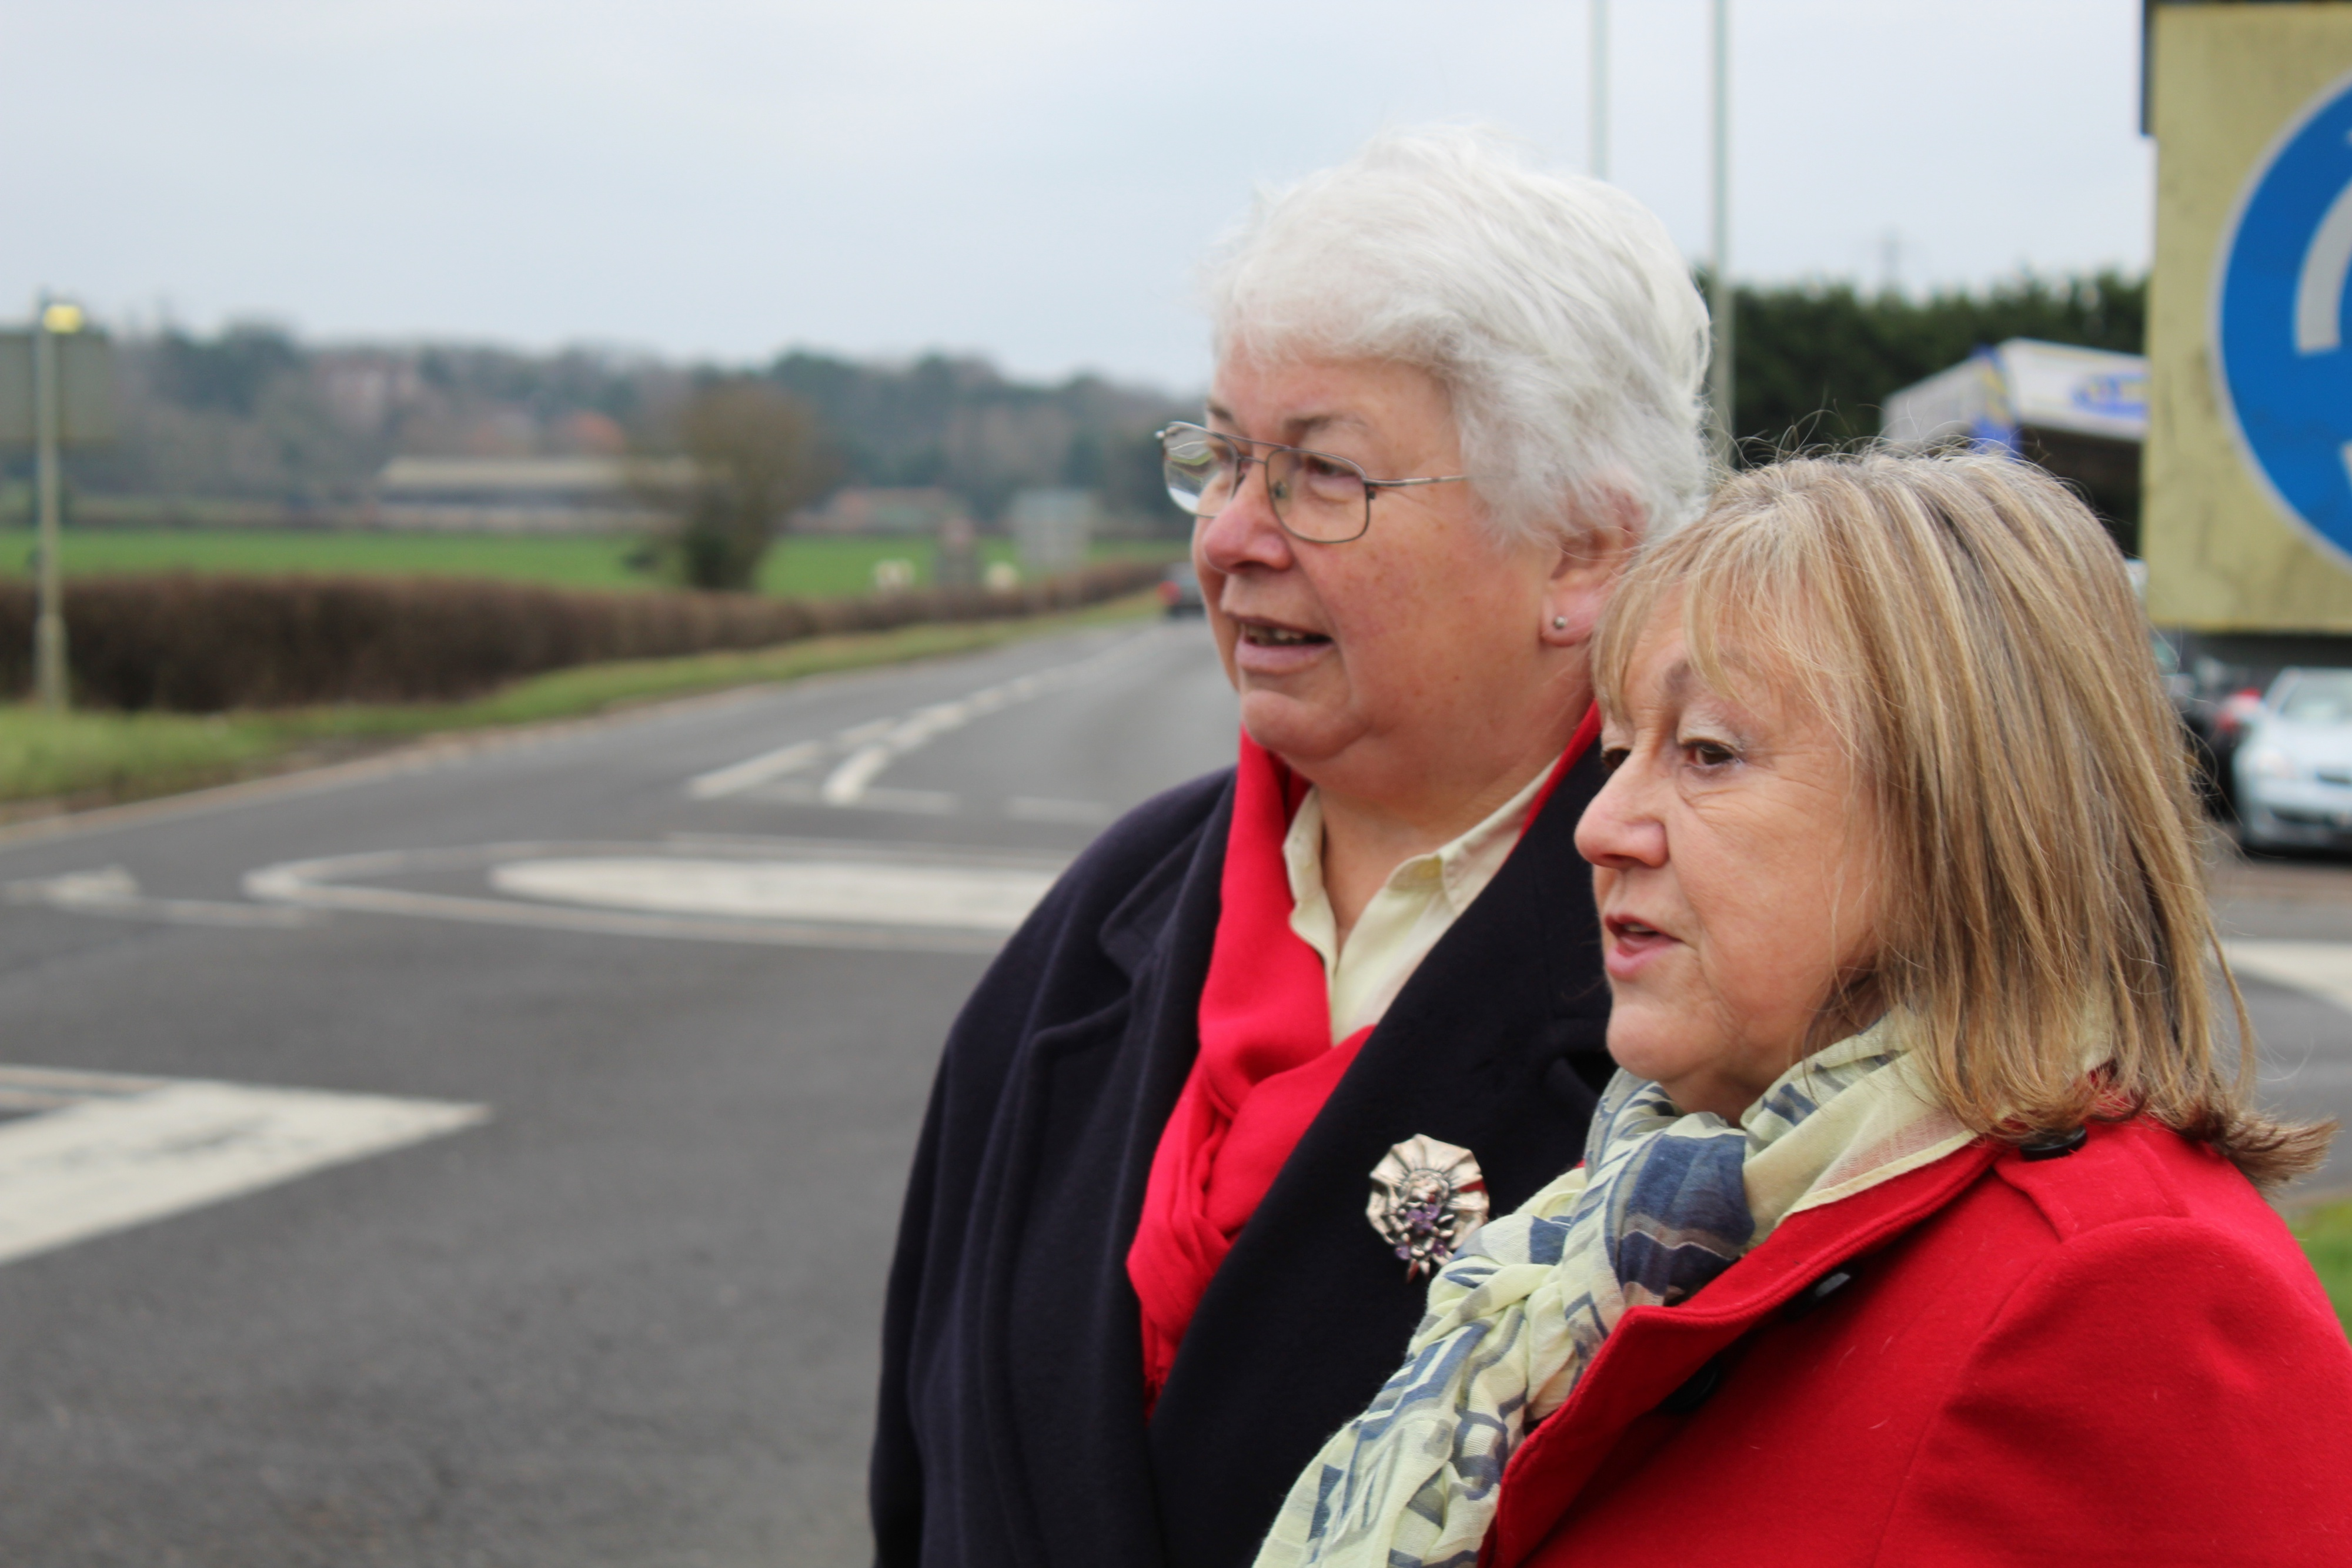 Vale Liberal Democrats say NO to the Expressway